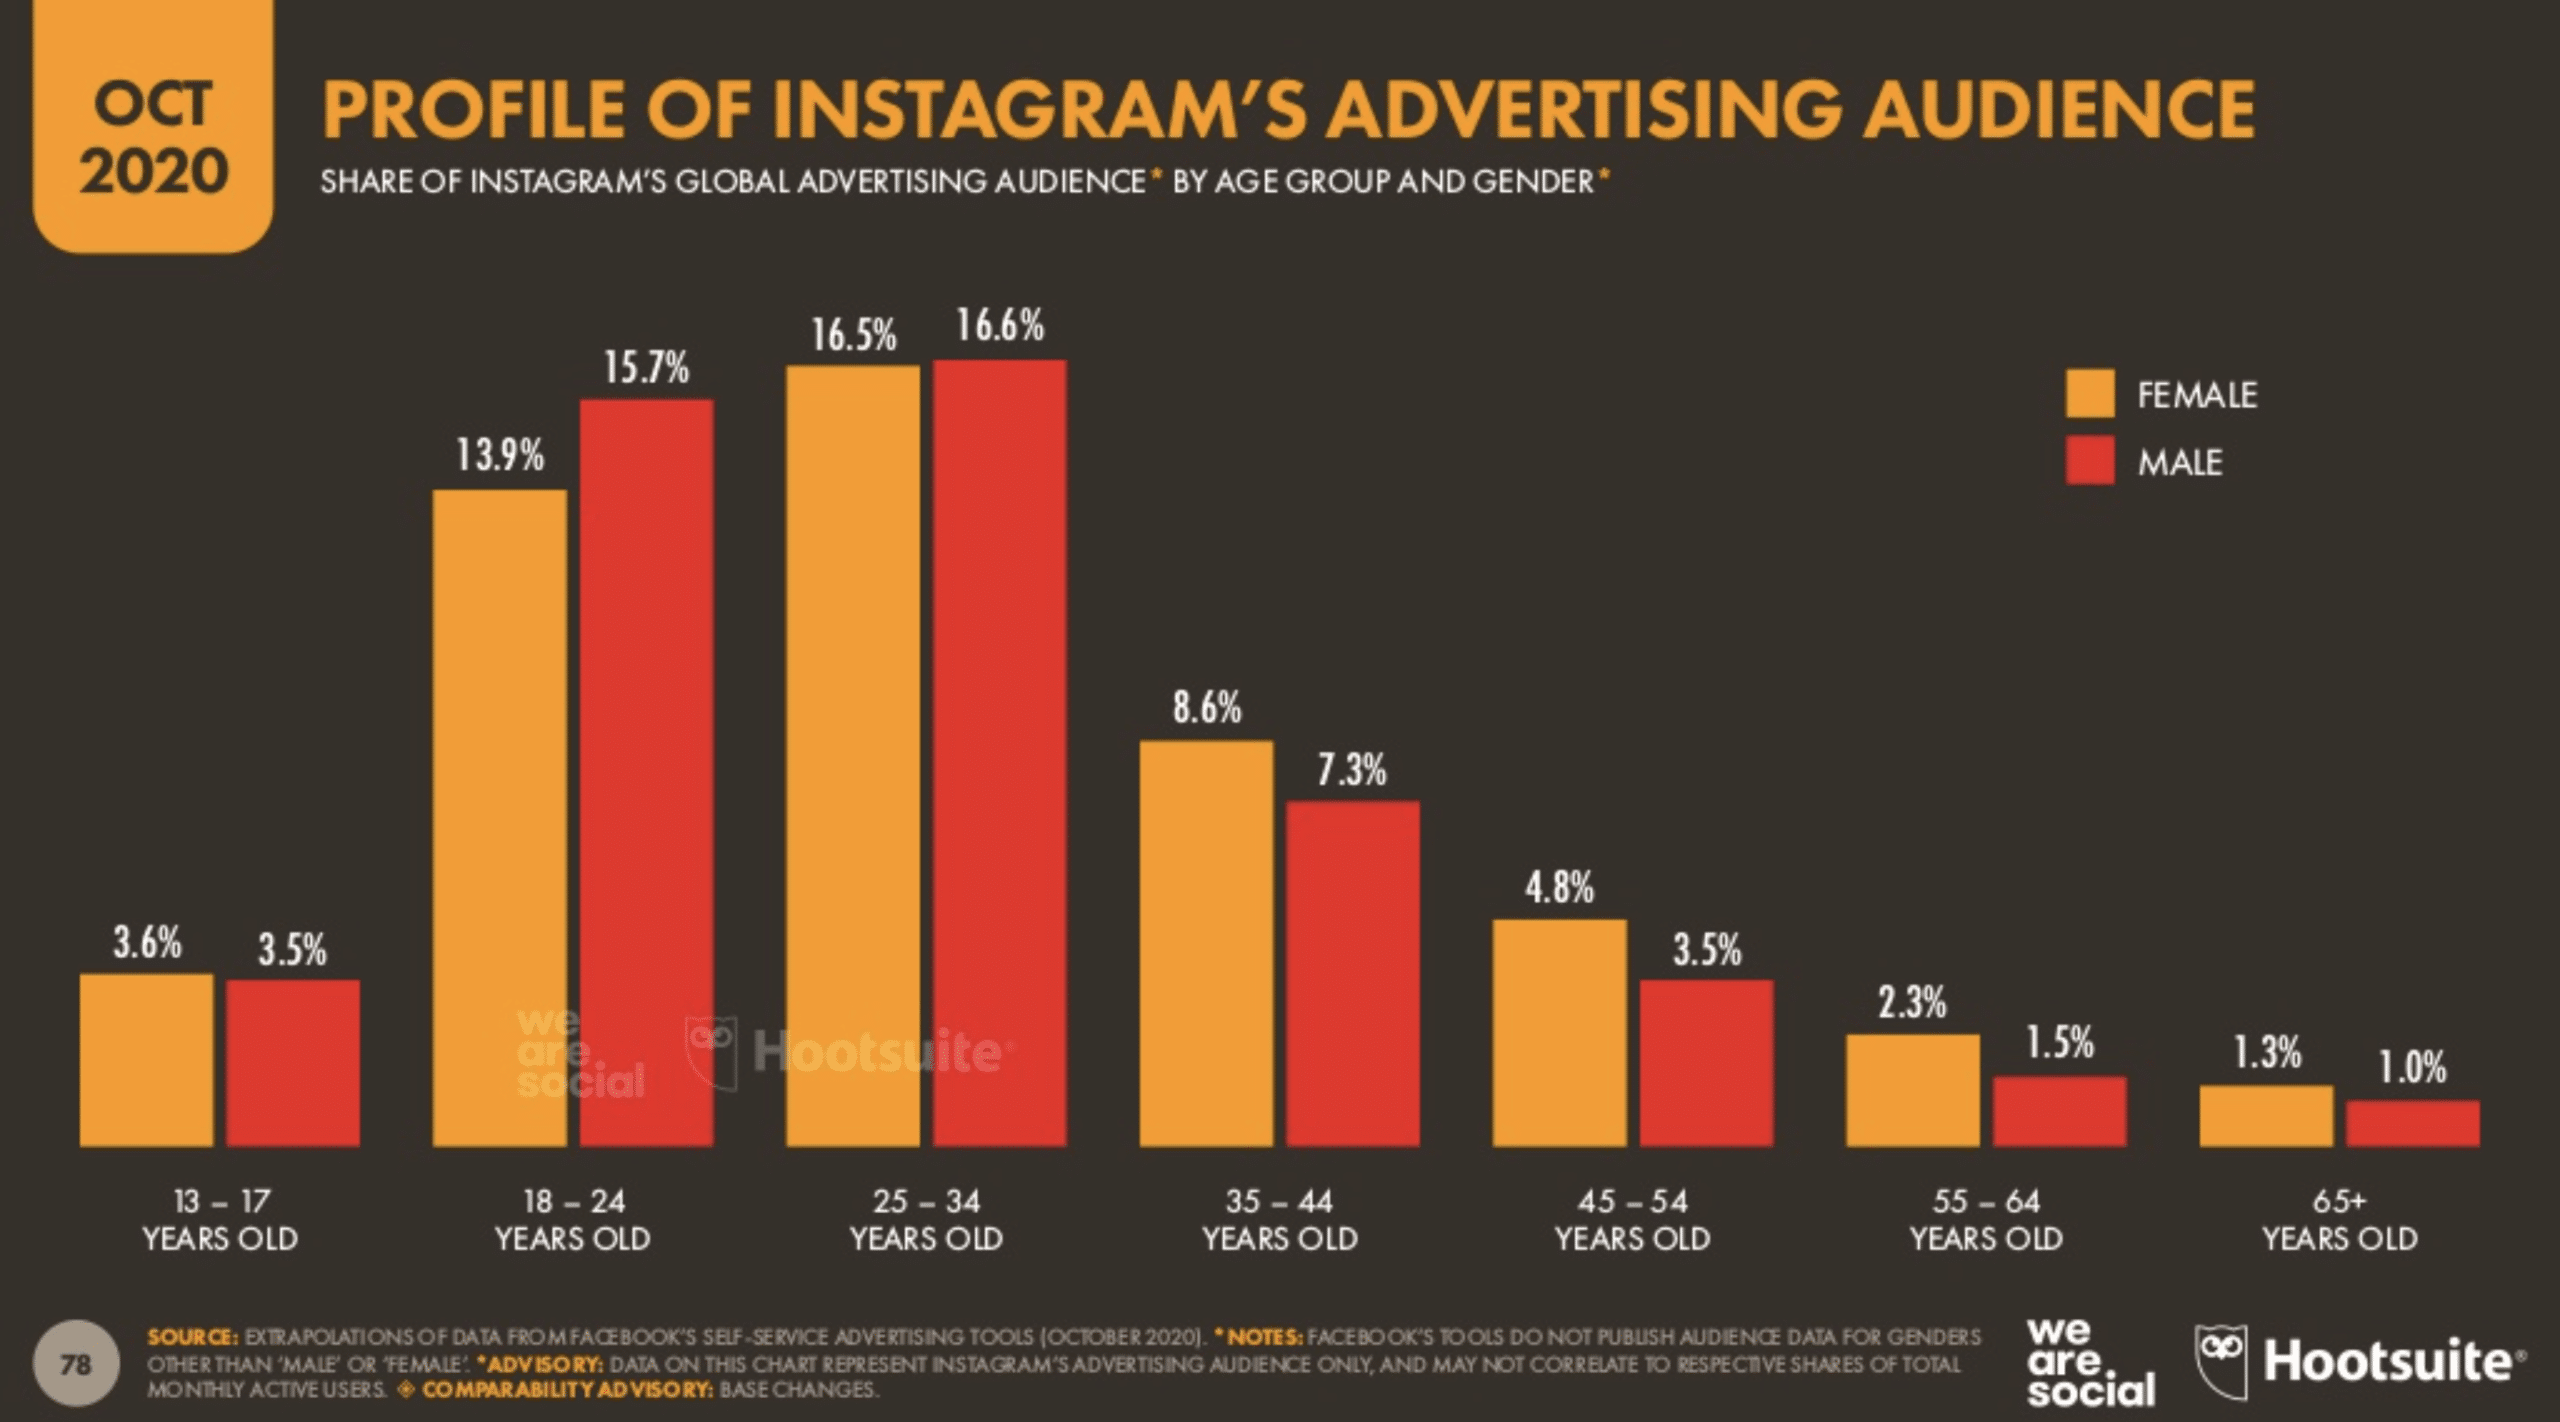 Profile of Instagram's advertising audience